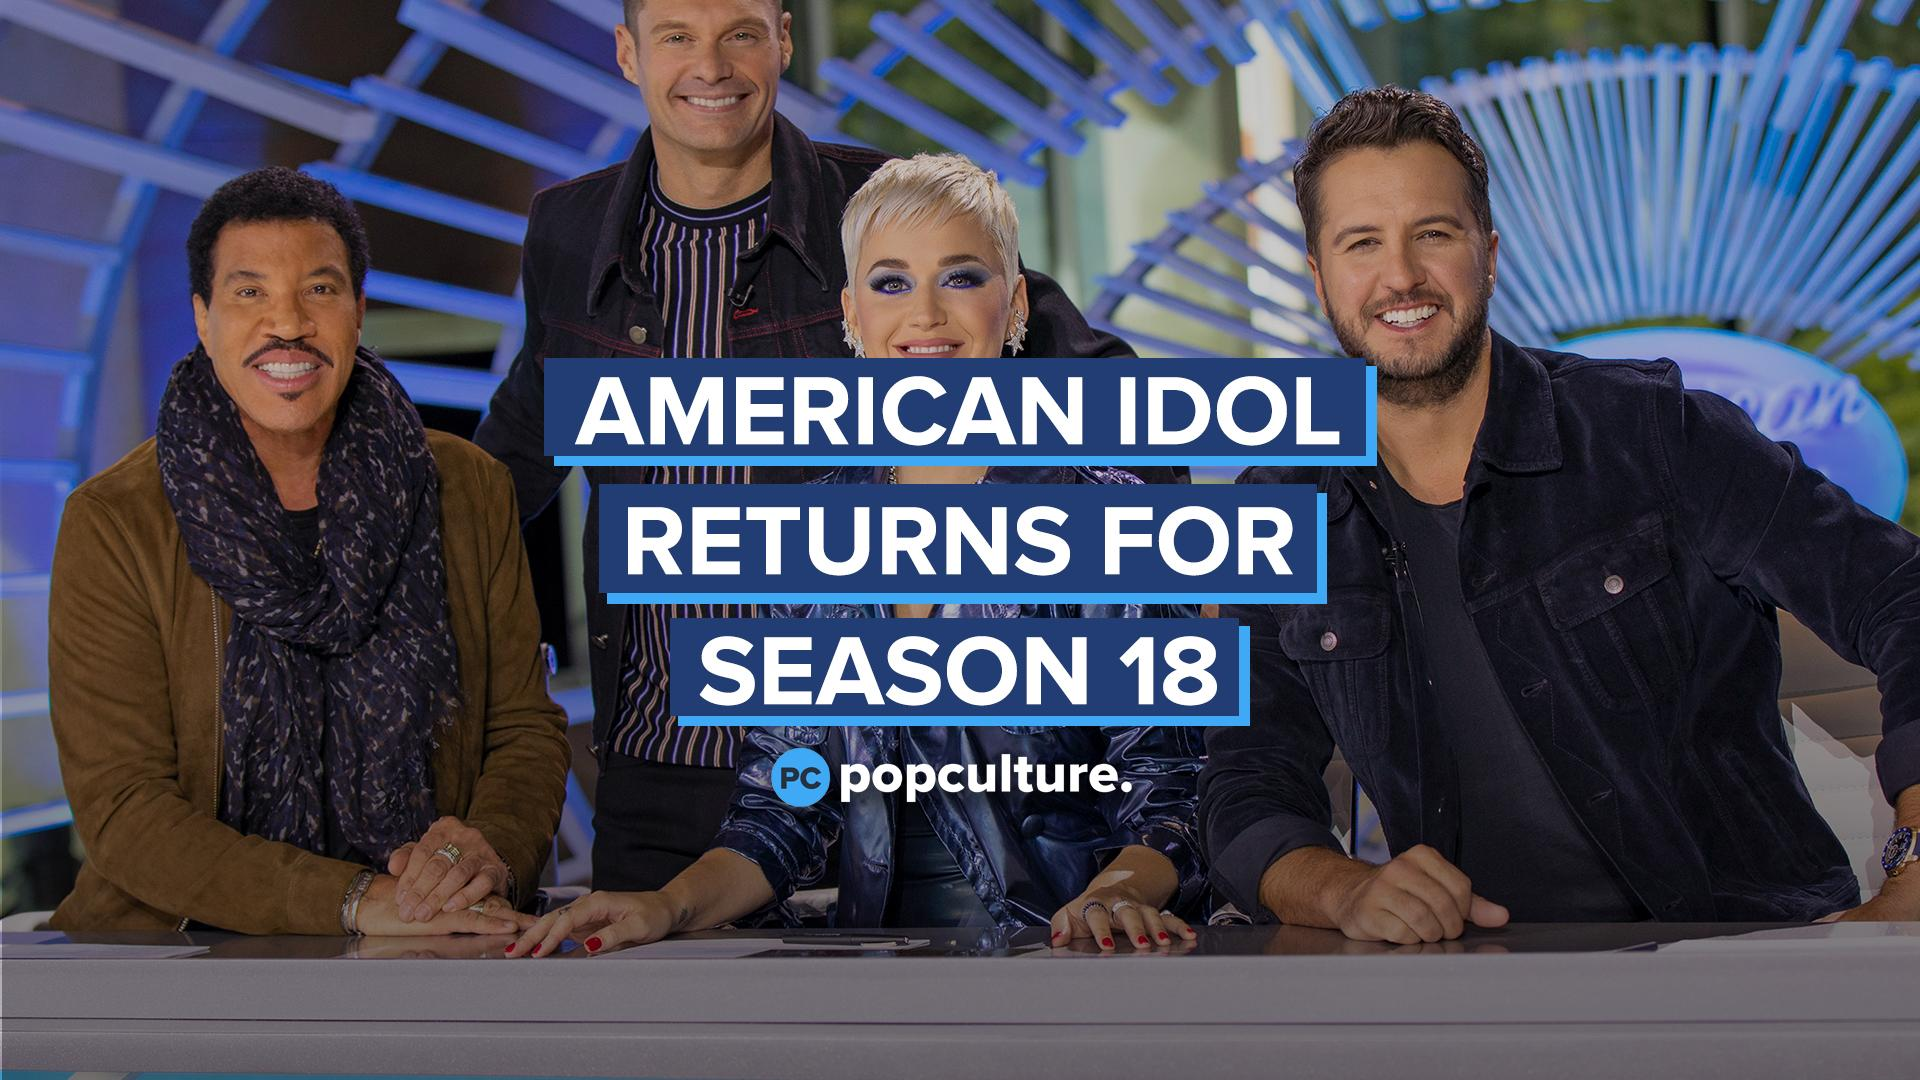 American Idol Returns for Season 18 screen capture